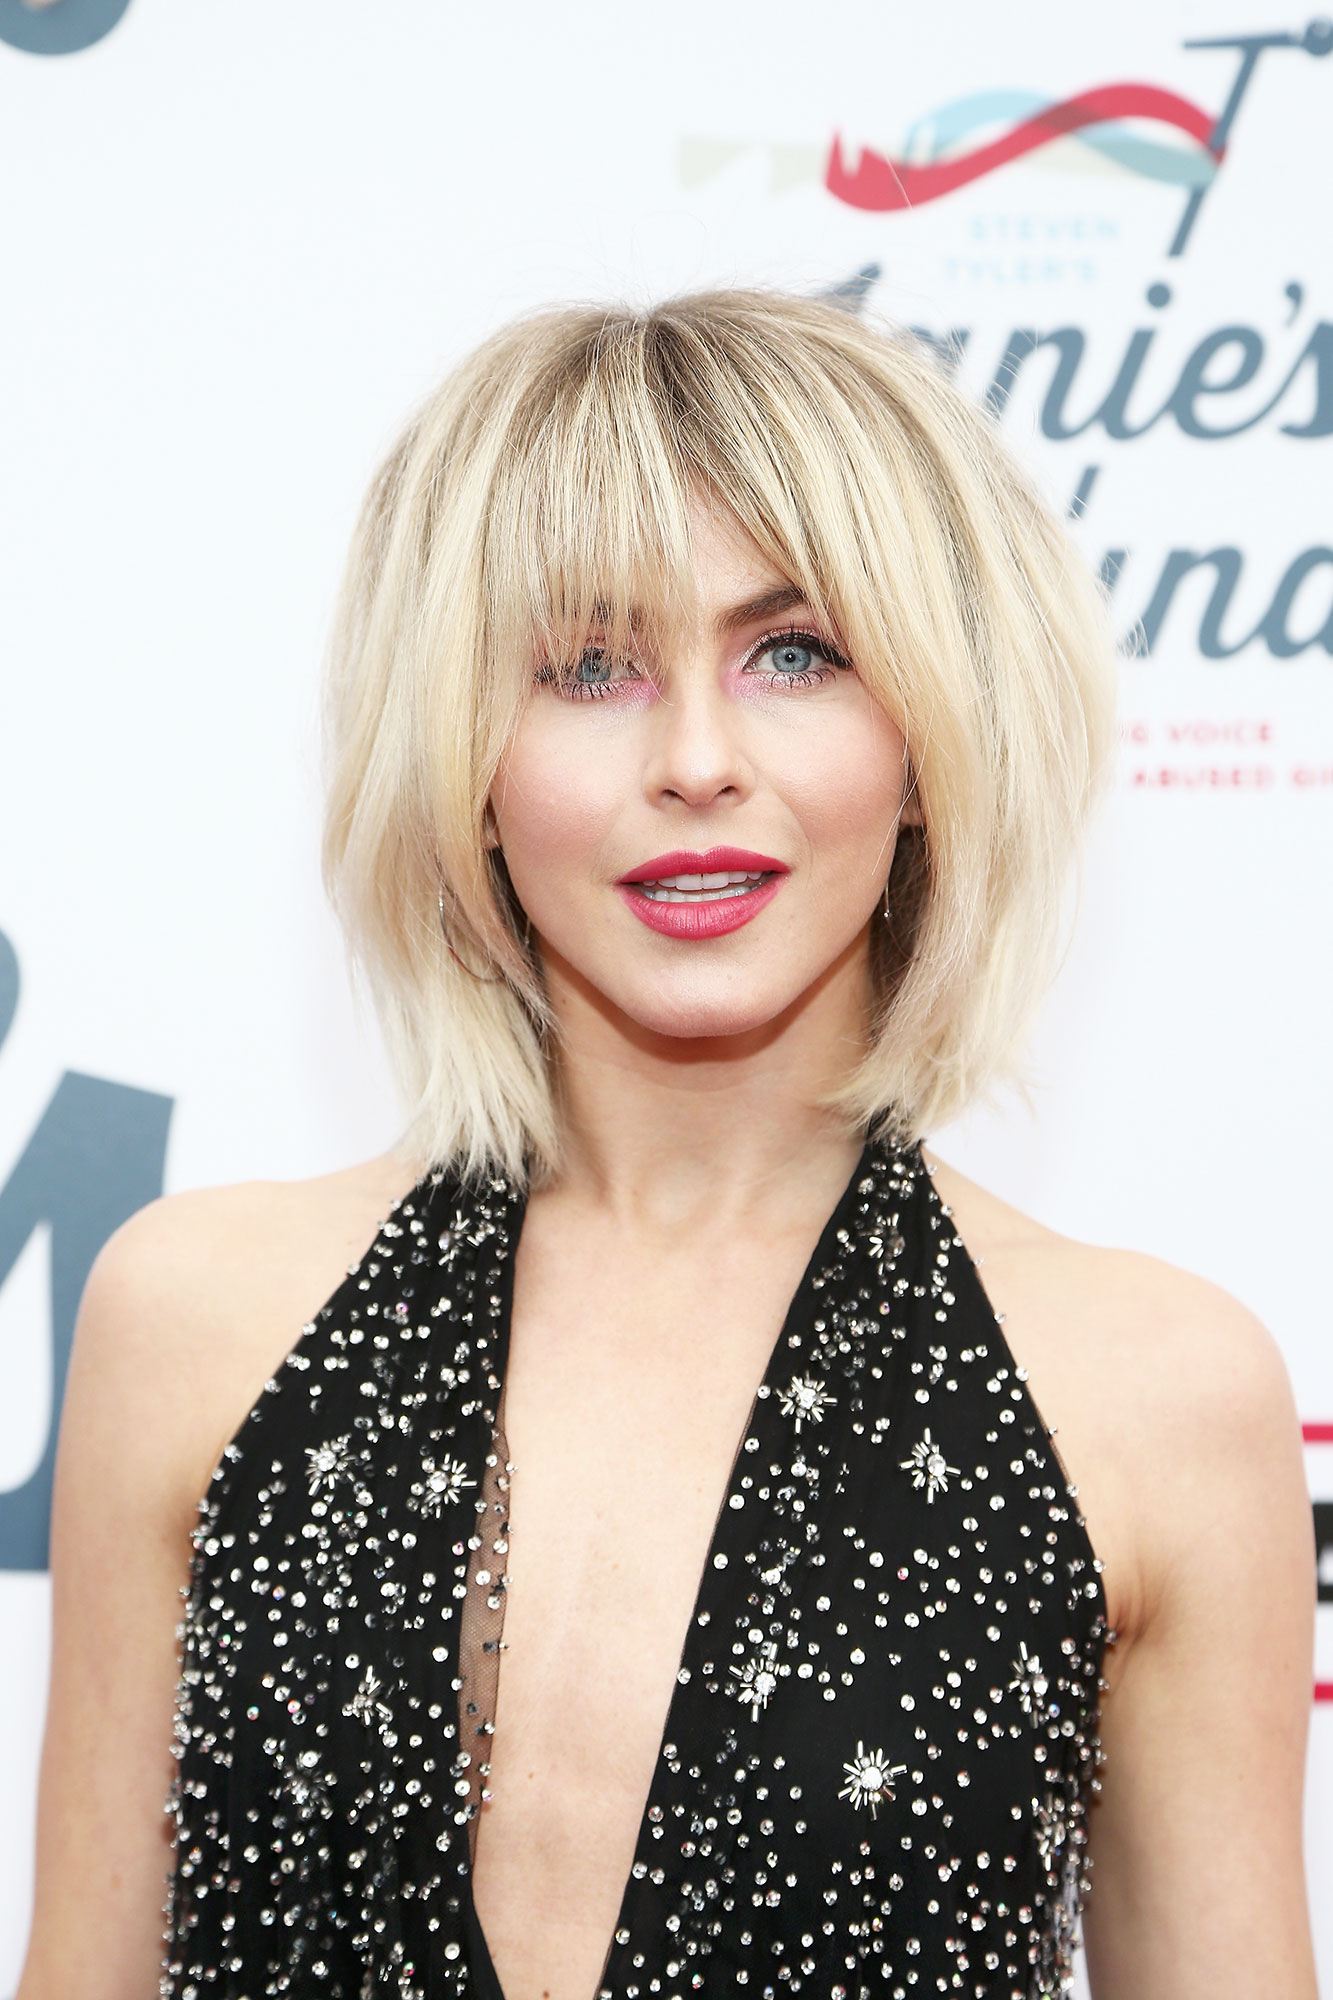 Julianne Hough Celebrity Bangs: Fierce Fringe Inspo For Your Next Haircut - After initially having her go-to hair pro Riawna Capri cut bangs last fall, the new America's Got Talent judge showed off a piecier and more grown-out shag at a 2019 Grammys event.